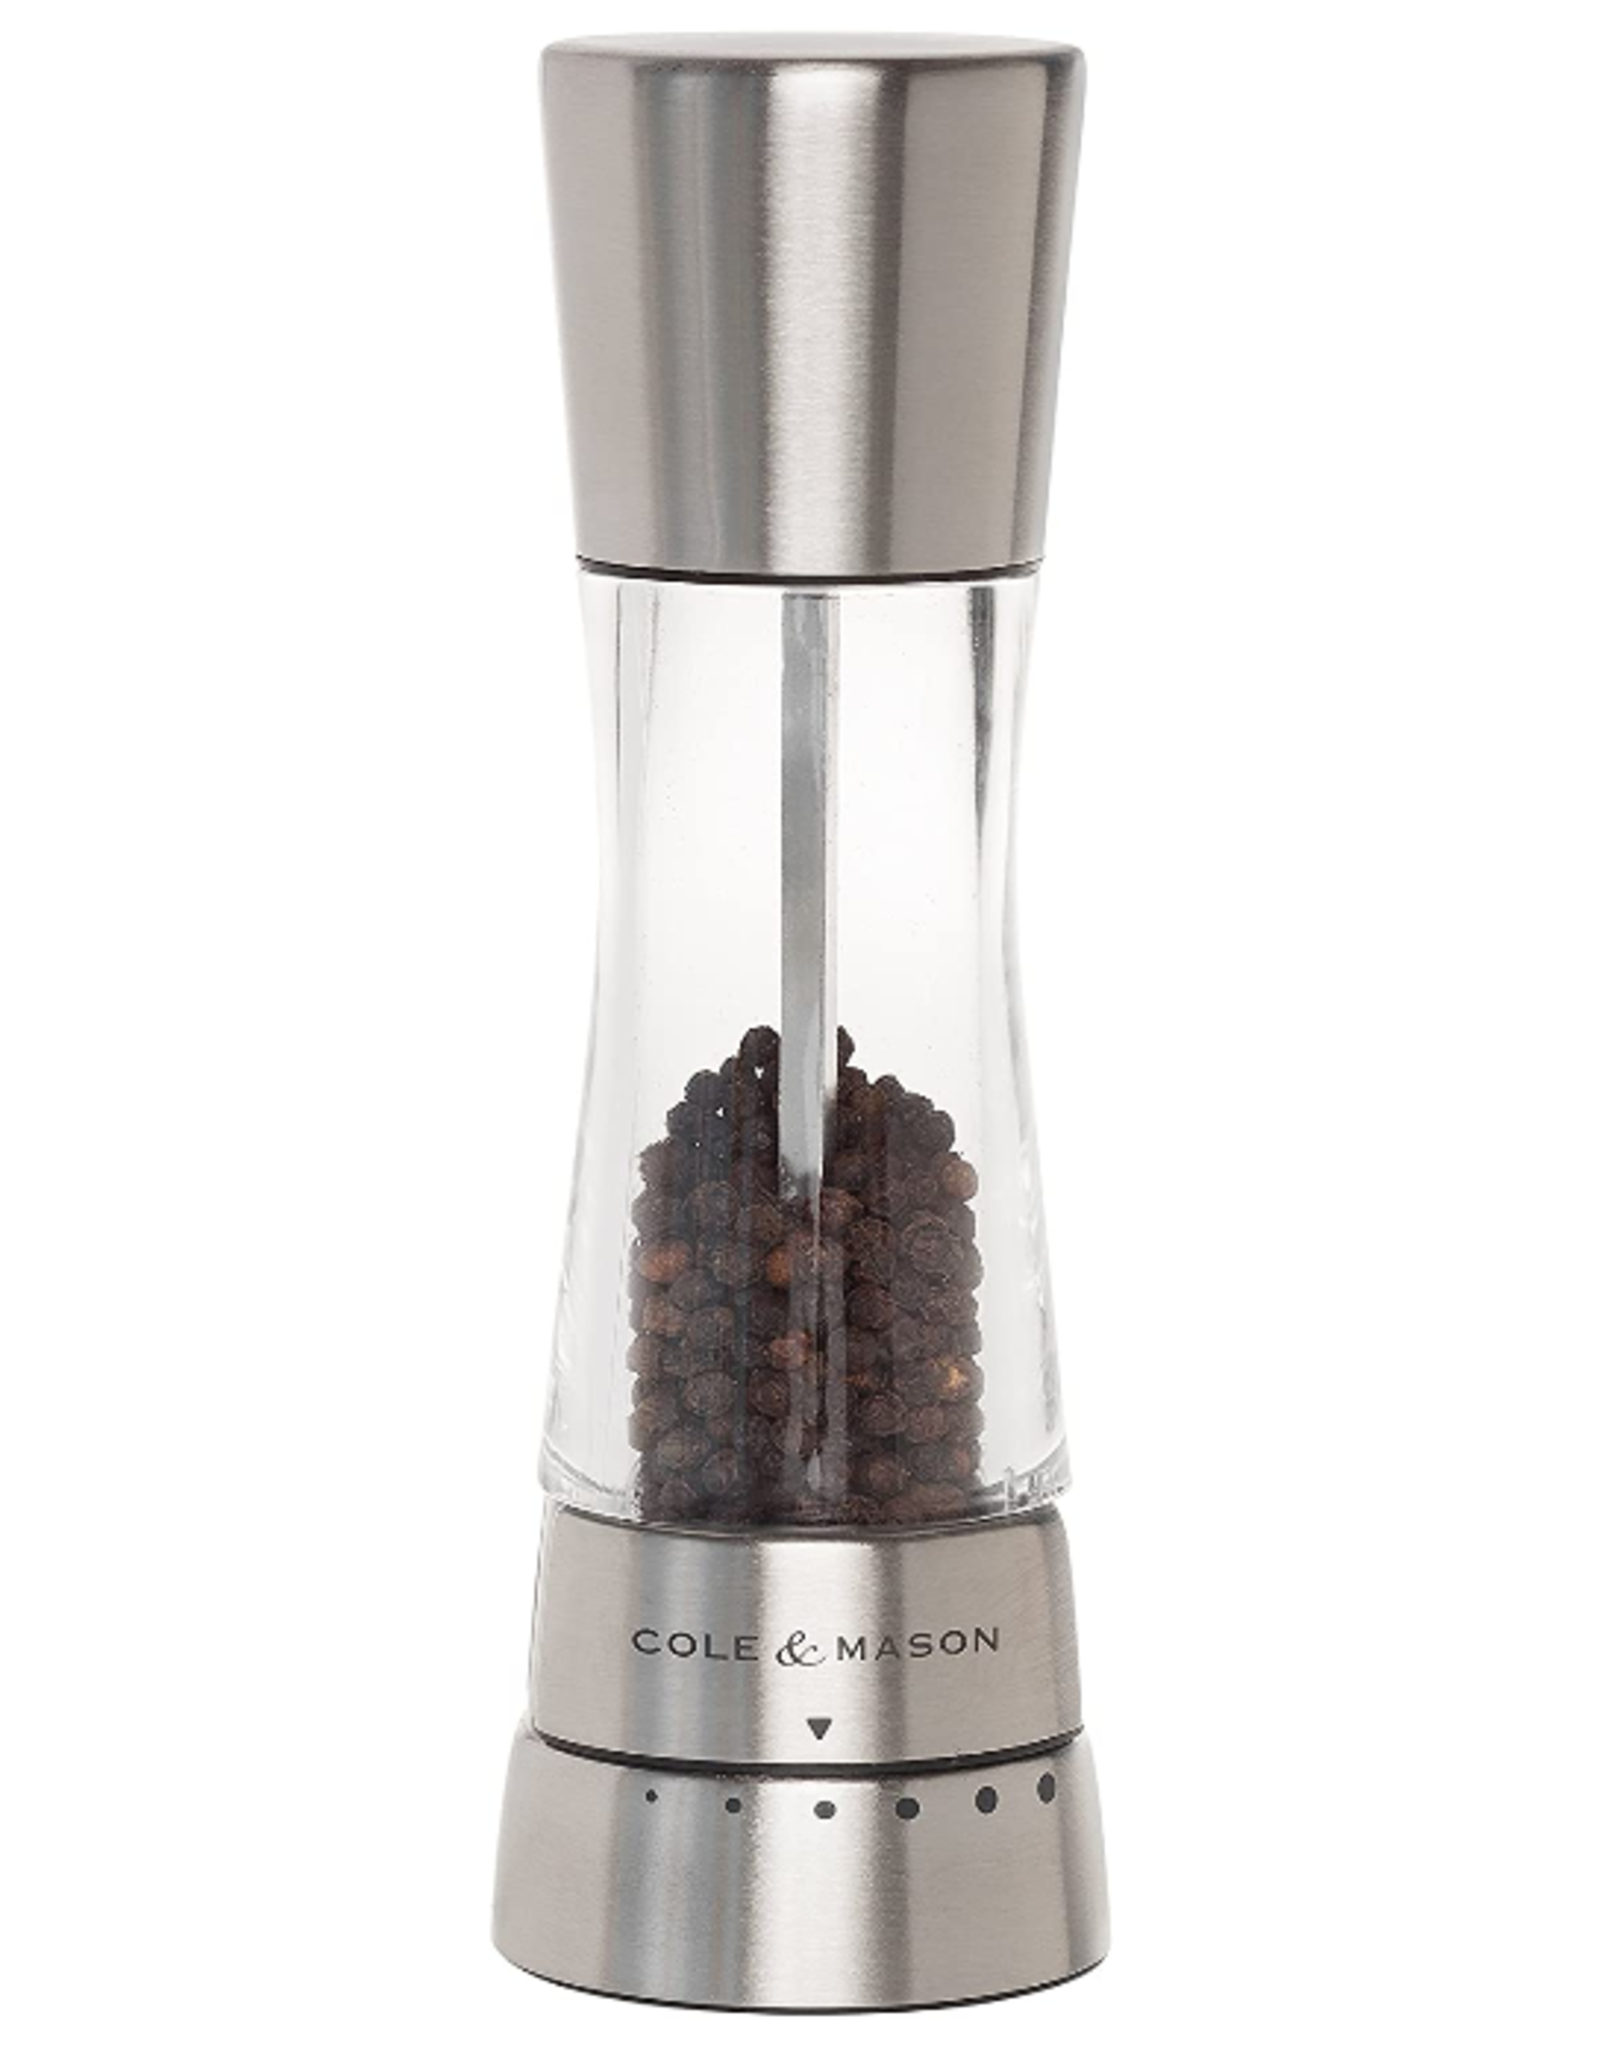 Cole & Mason Derwent Pepper Mill, SS - Carbon Steel Mechanism